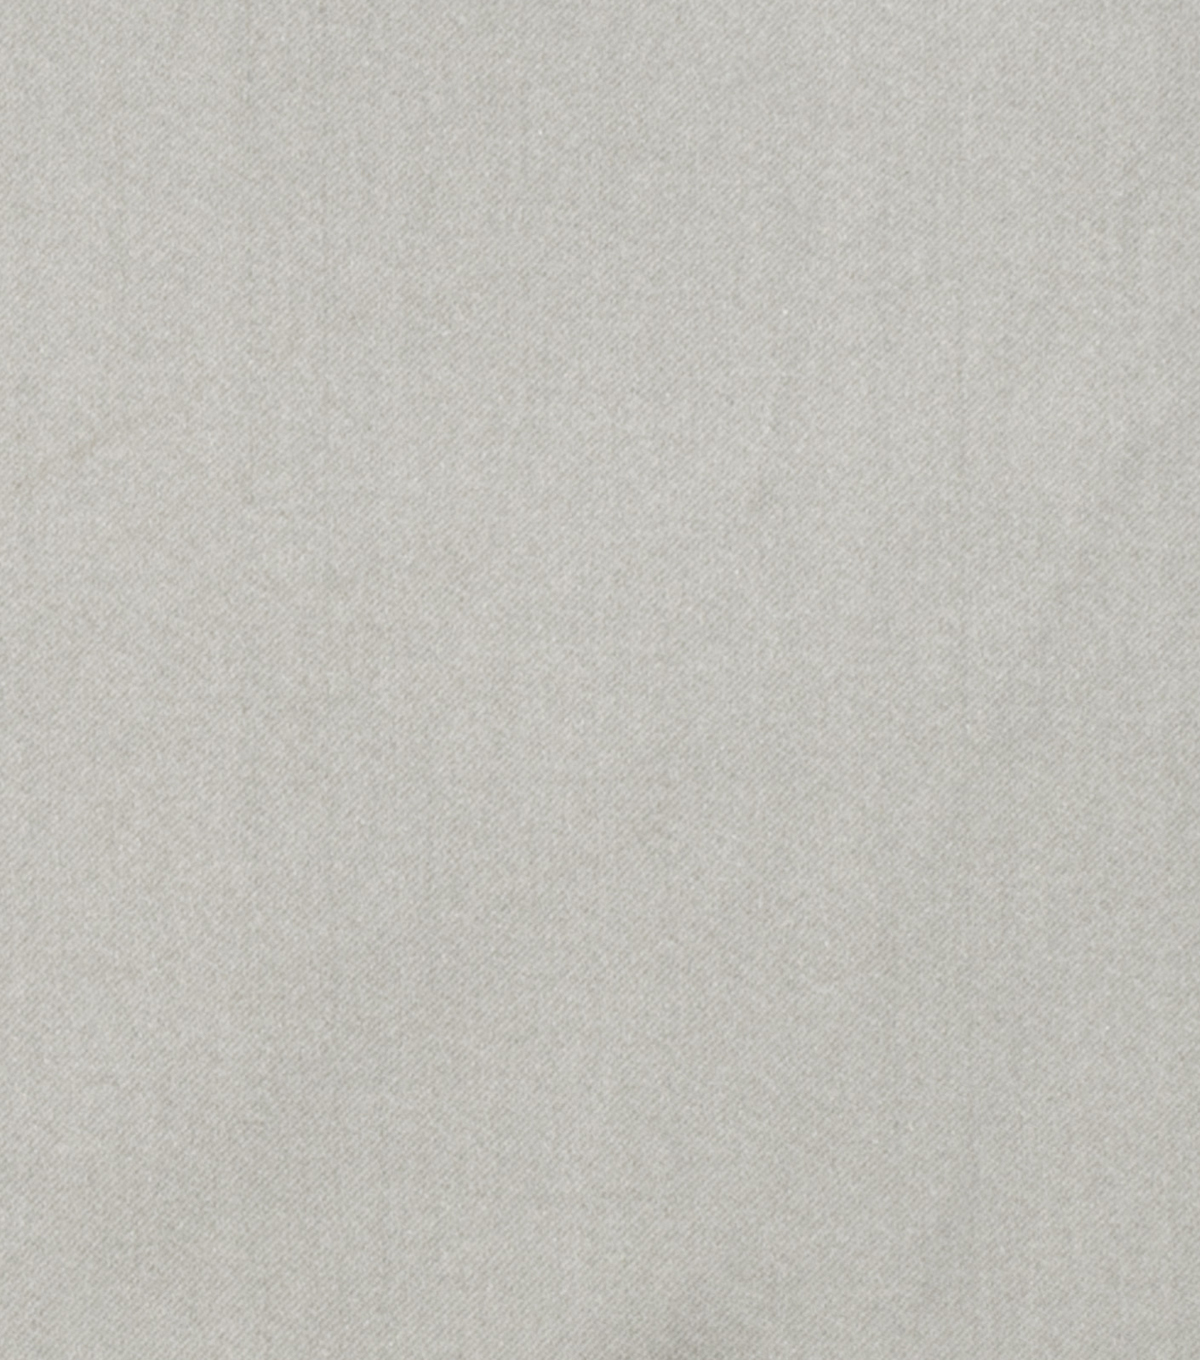 Home Decor 8\u0022x8\u0022 Fabric Swatch-Signature Series Couture Satin Platinum